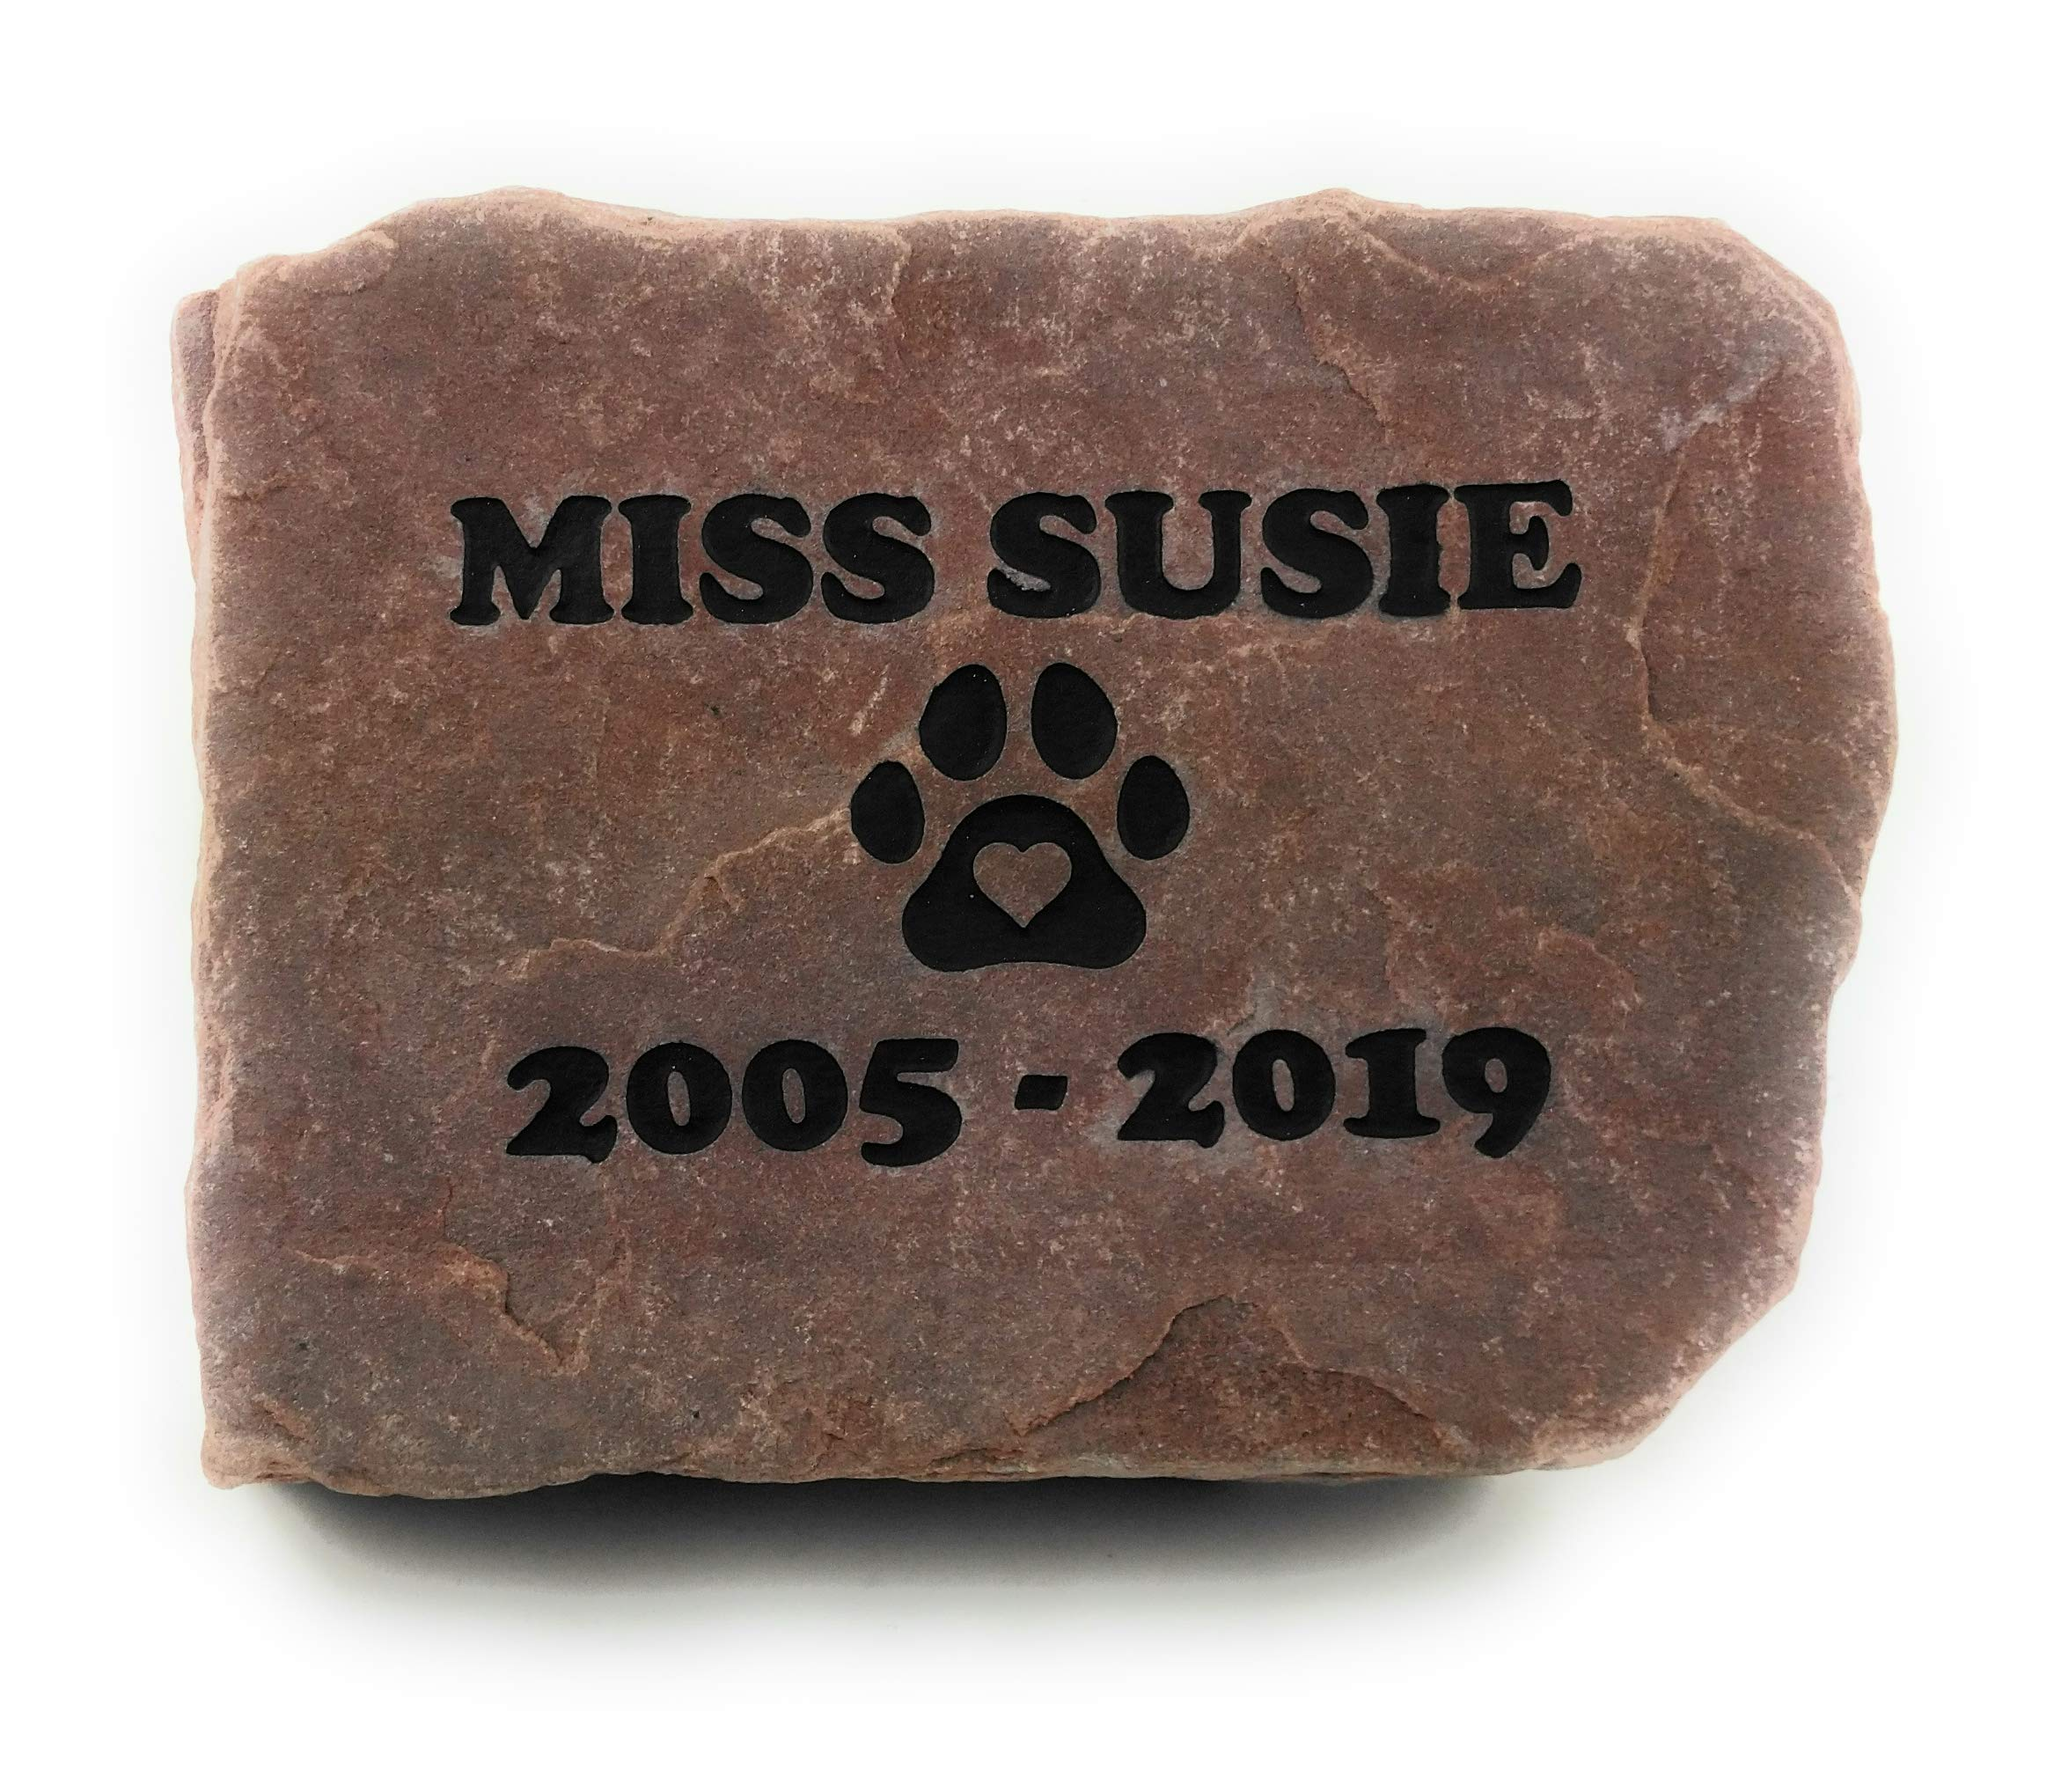 GraphicRocks Sandblast Engraved Red Stone Pet Memorial Headstone Grave Marker Dog Cat npp by GraphicRocks